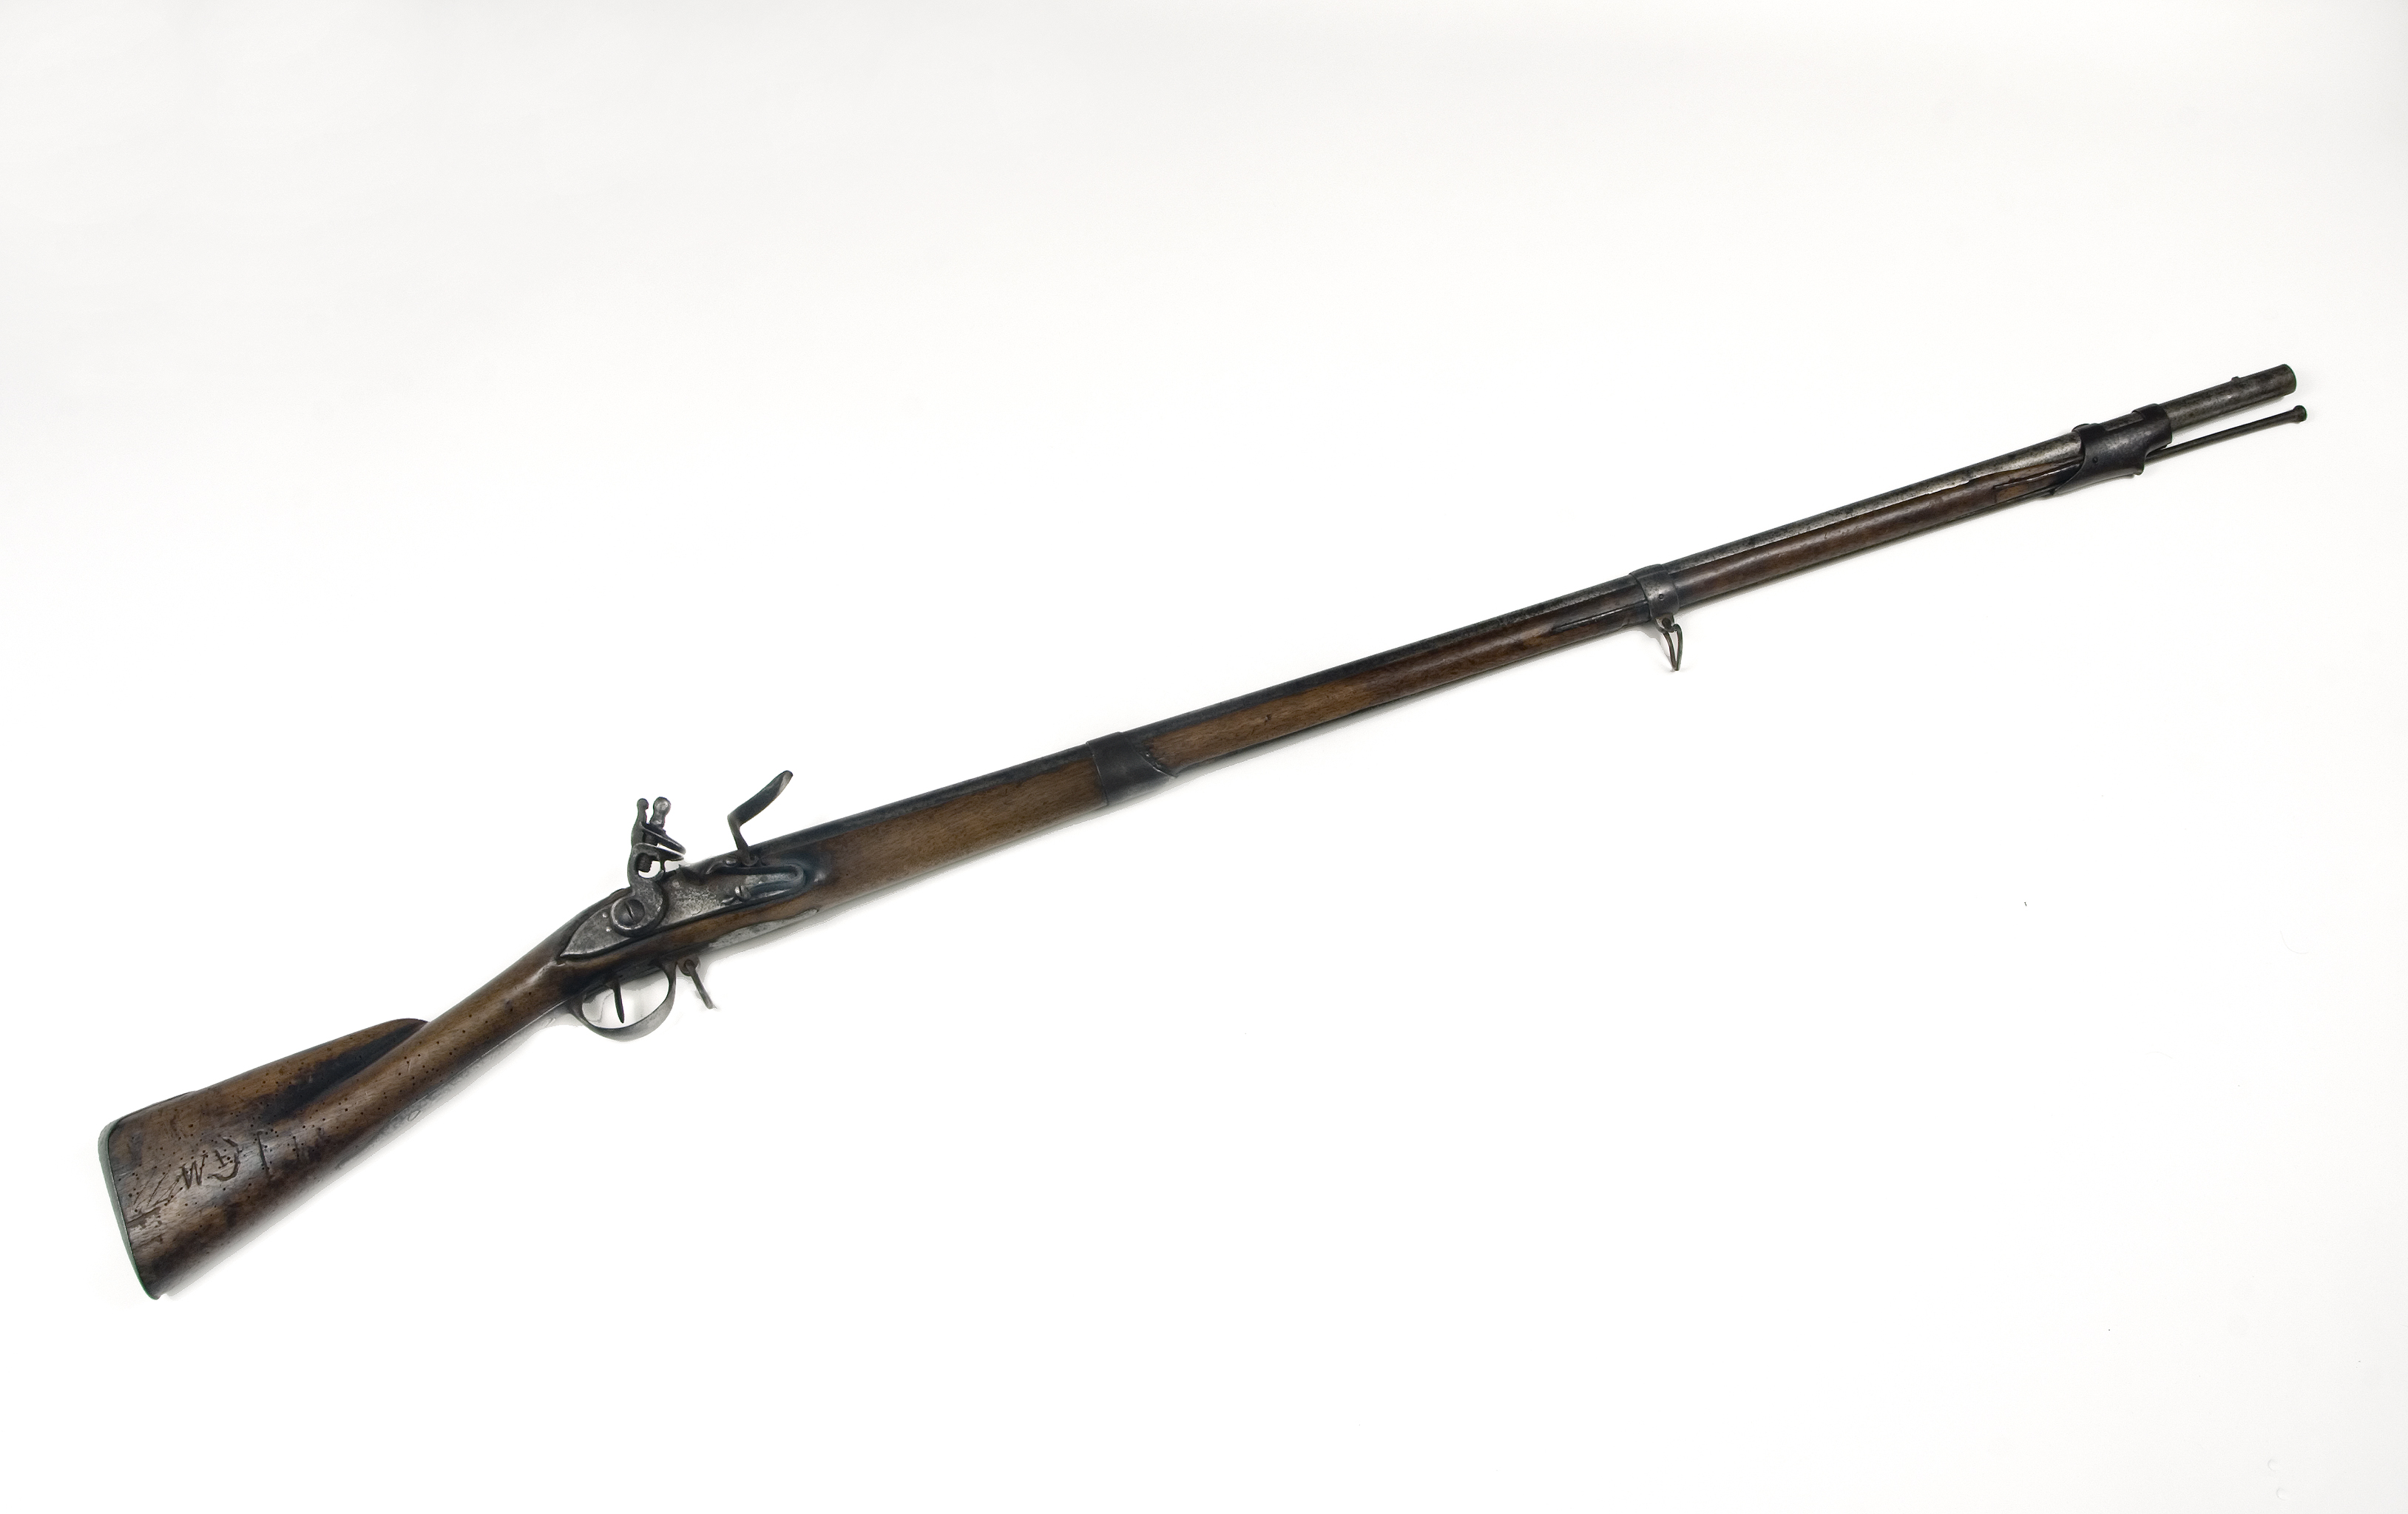 French Model 1766 Charleville musket